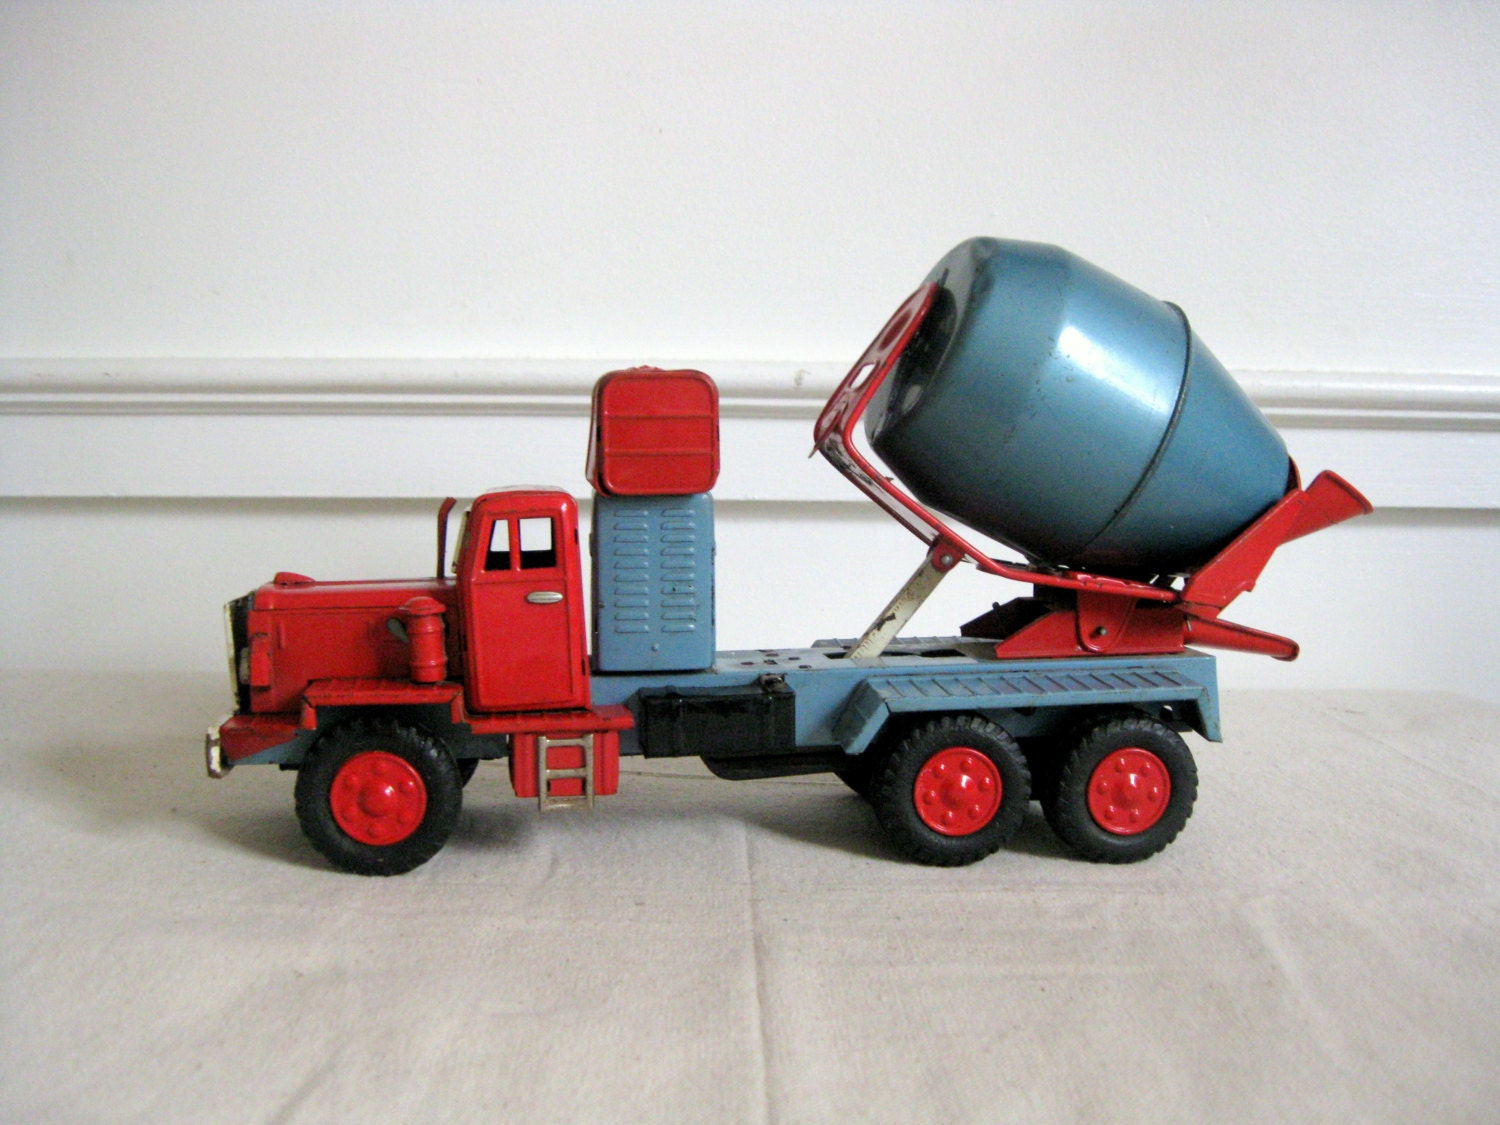 Vintage cement mixer toy trucks